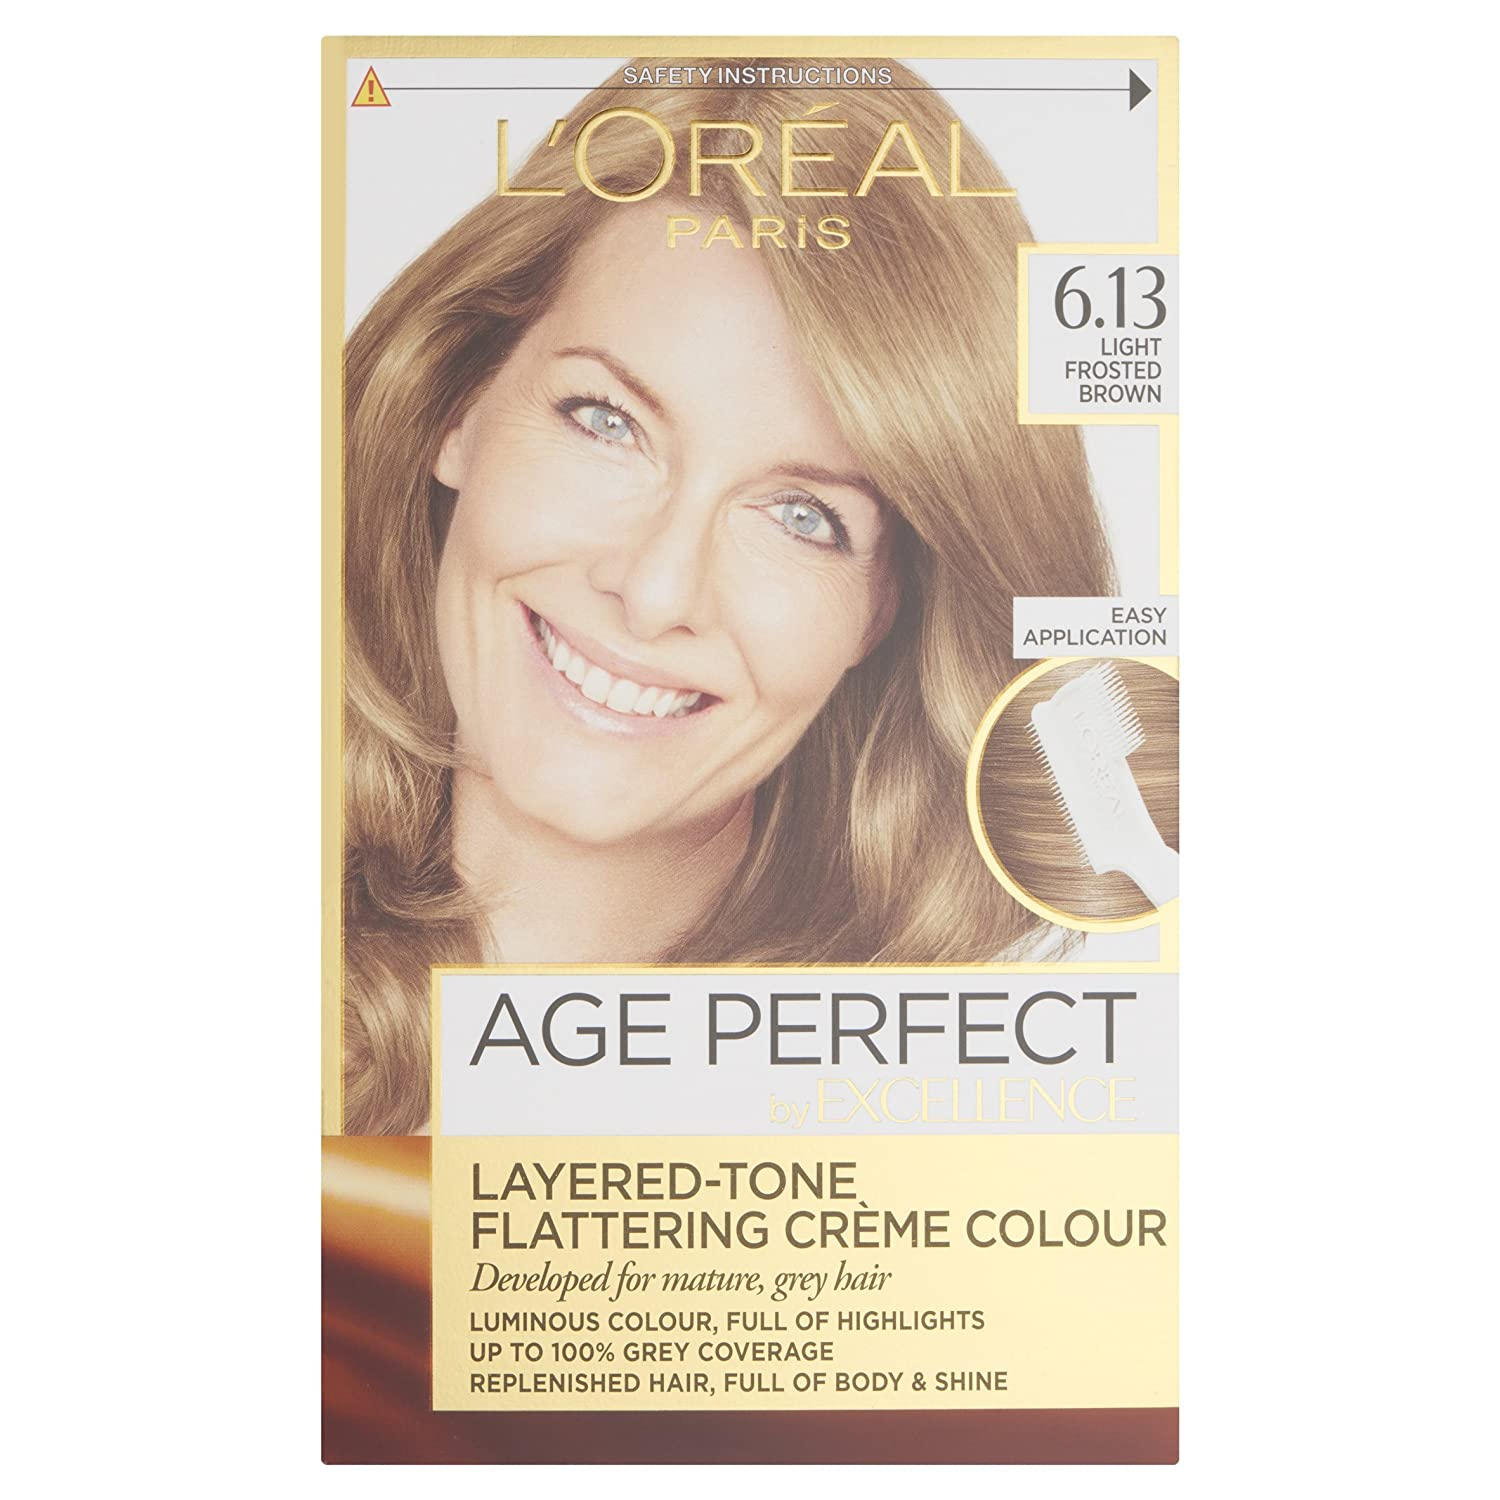 Loreal Excellence Age Perfect 613 Light Frosted Brown Hair Dye